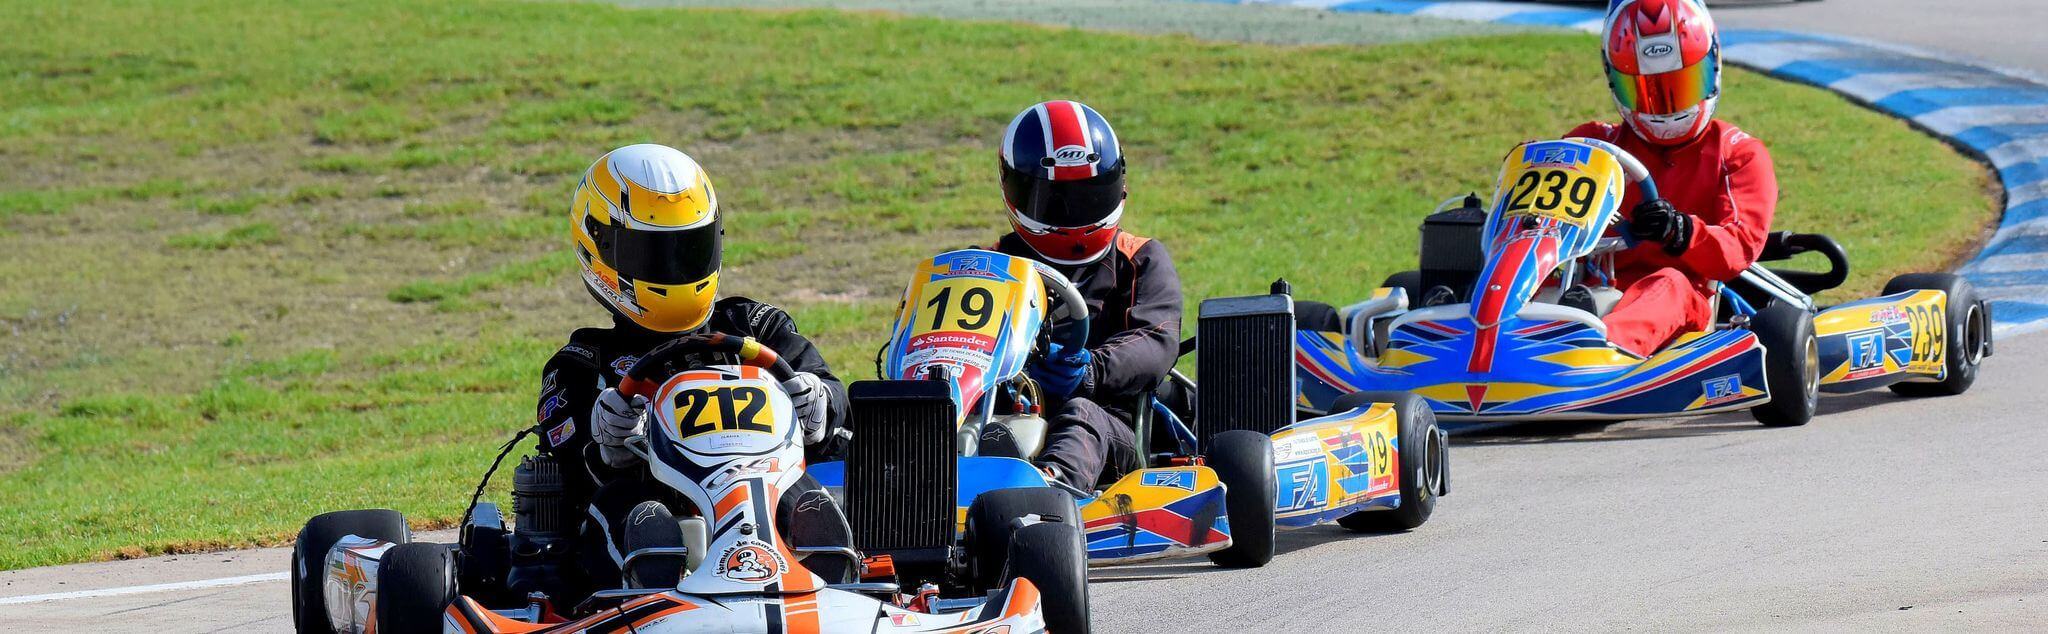 Karting in Cumbria